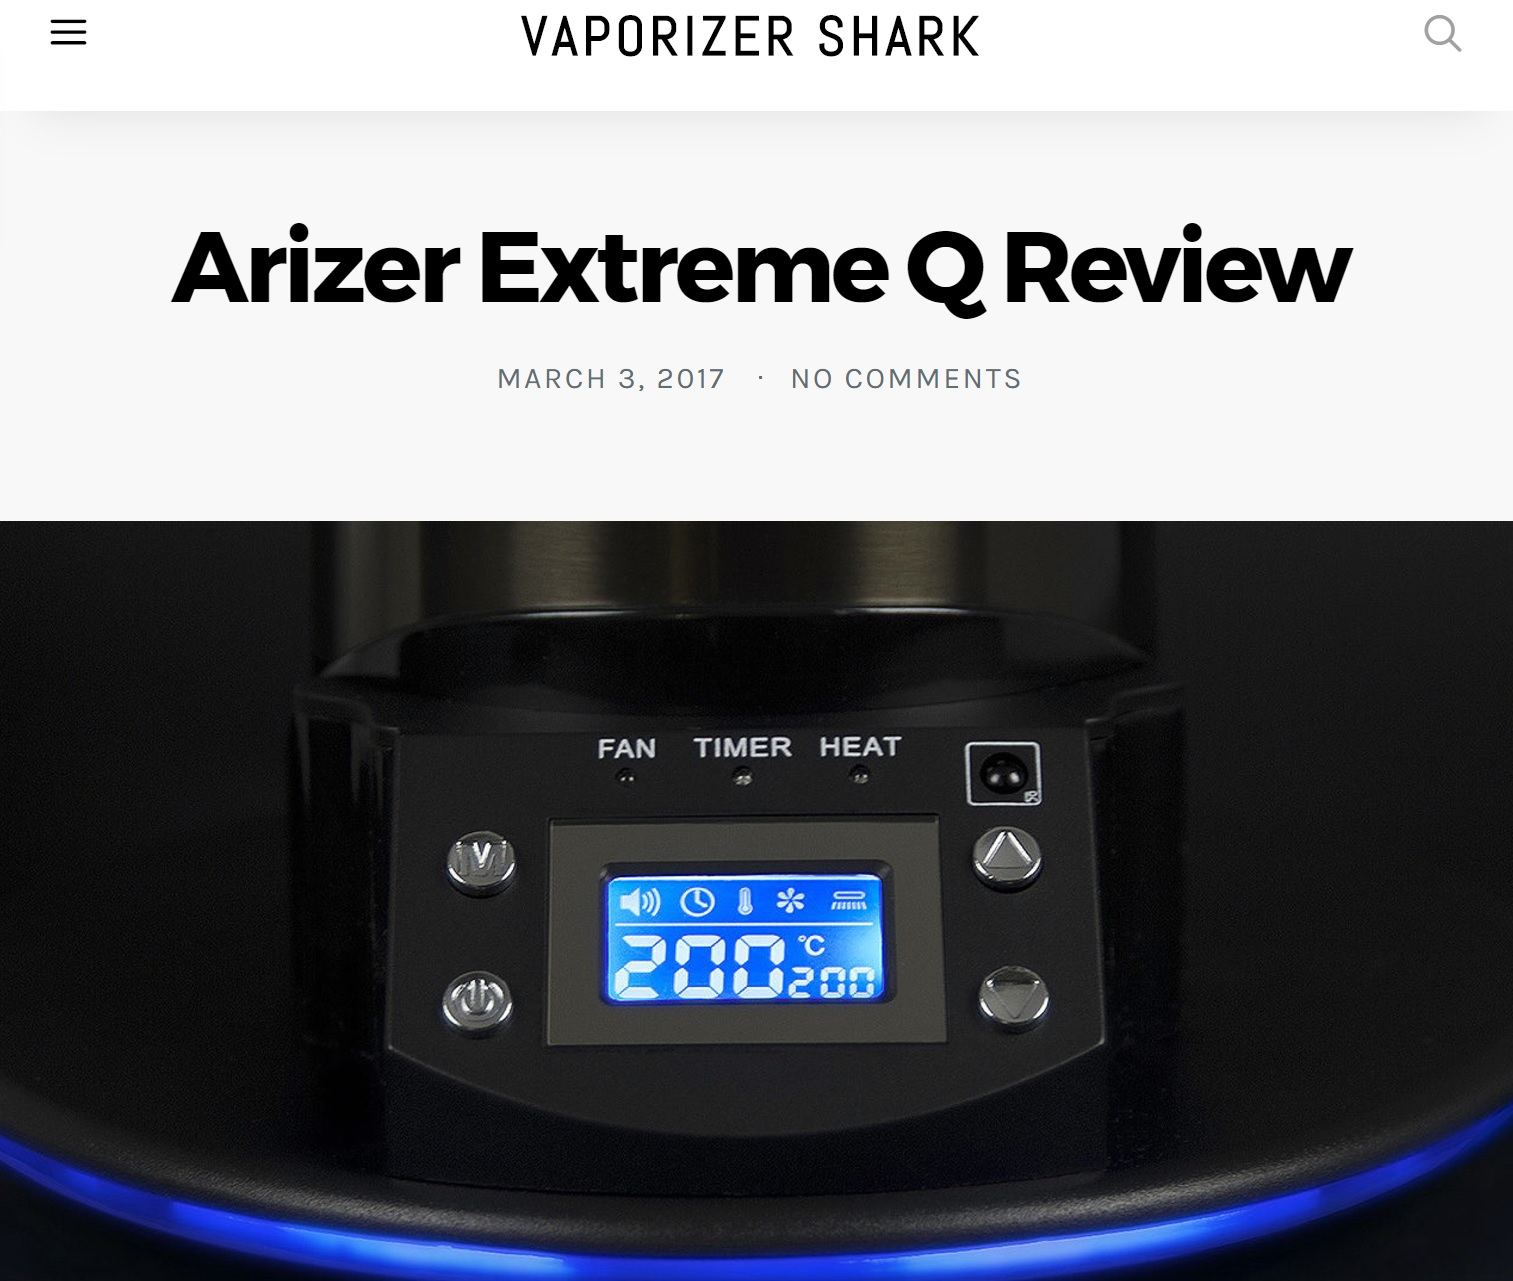 VaporizerShark.com's Arizer Extreme Q Review